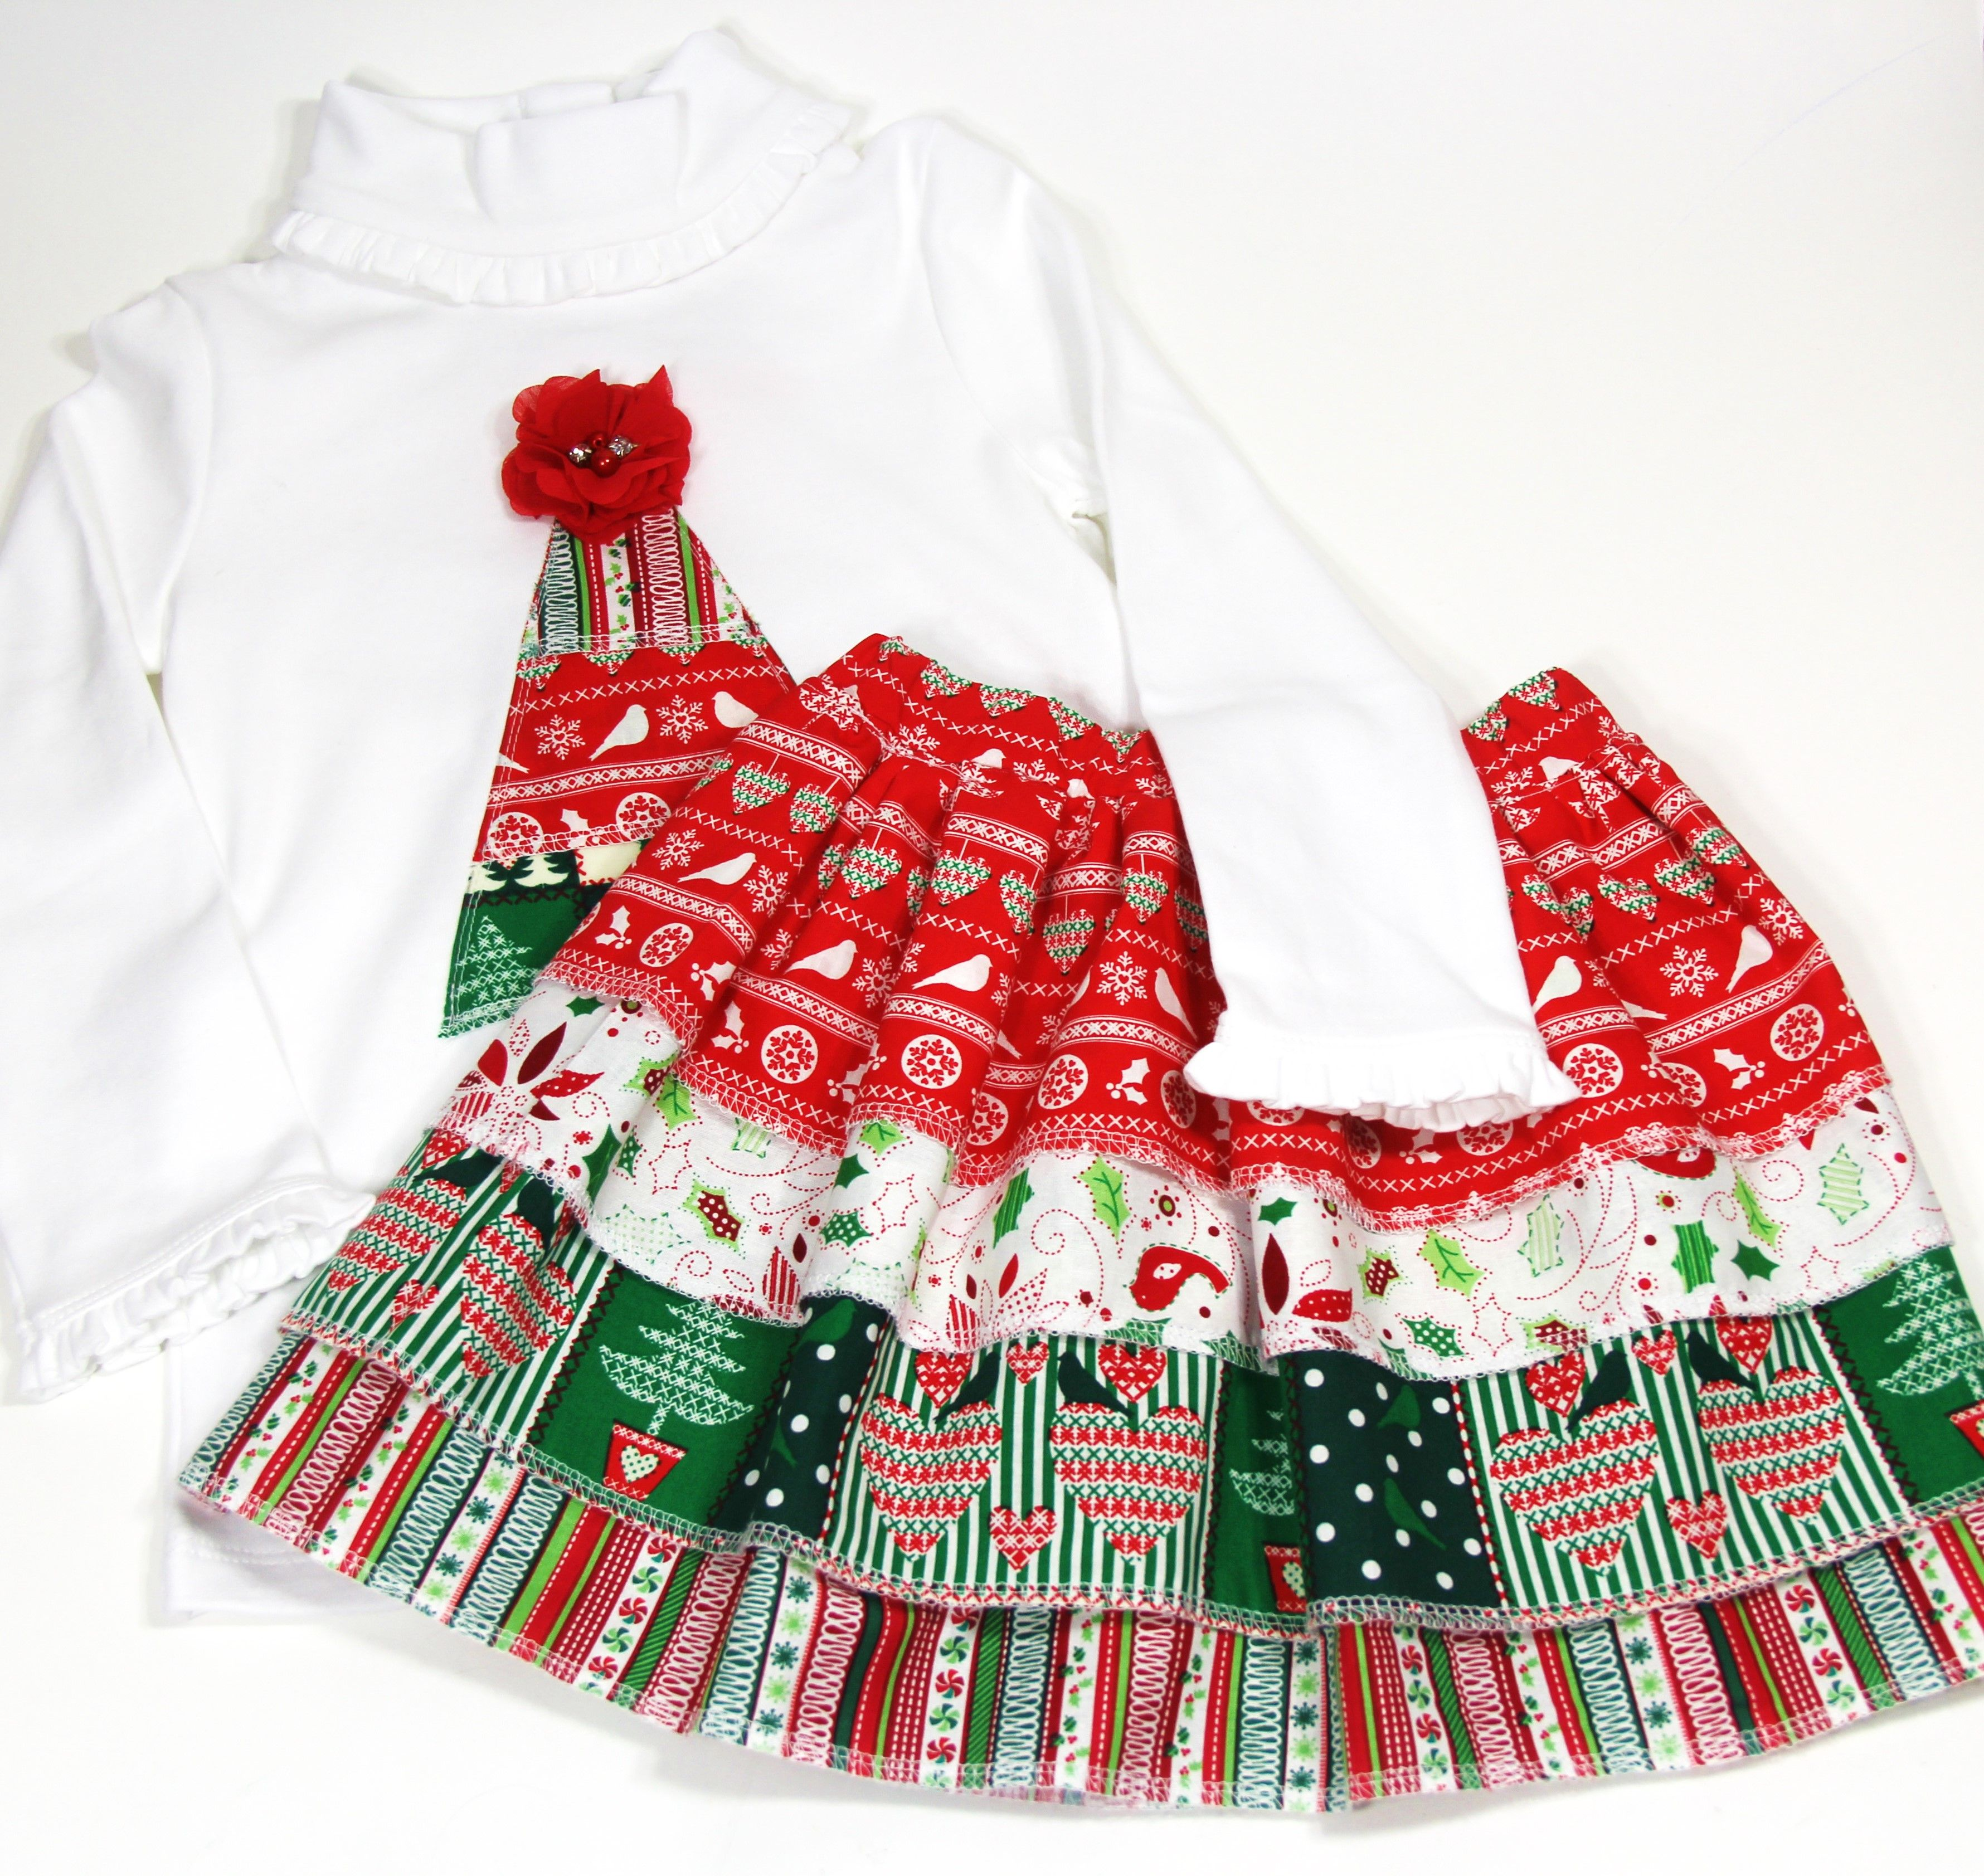 Toddler 2-3 Years Old Christmas Outfit for Girls   Girls christmas outfits, Girl outfits, Outfits